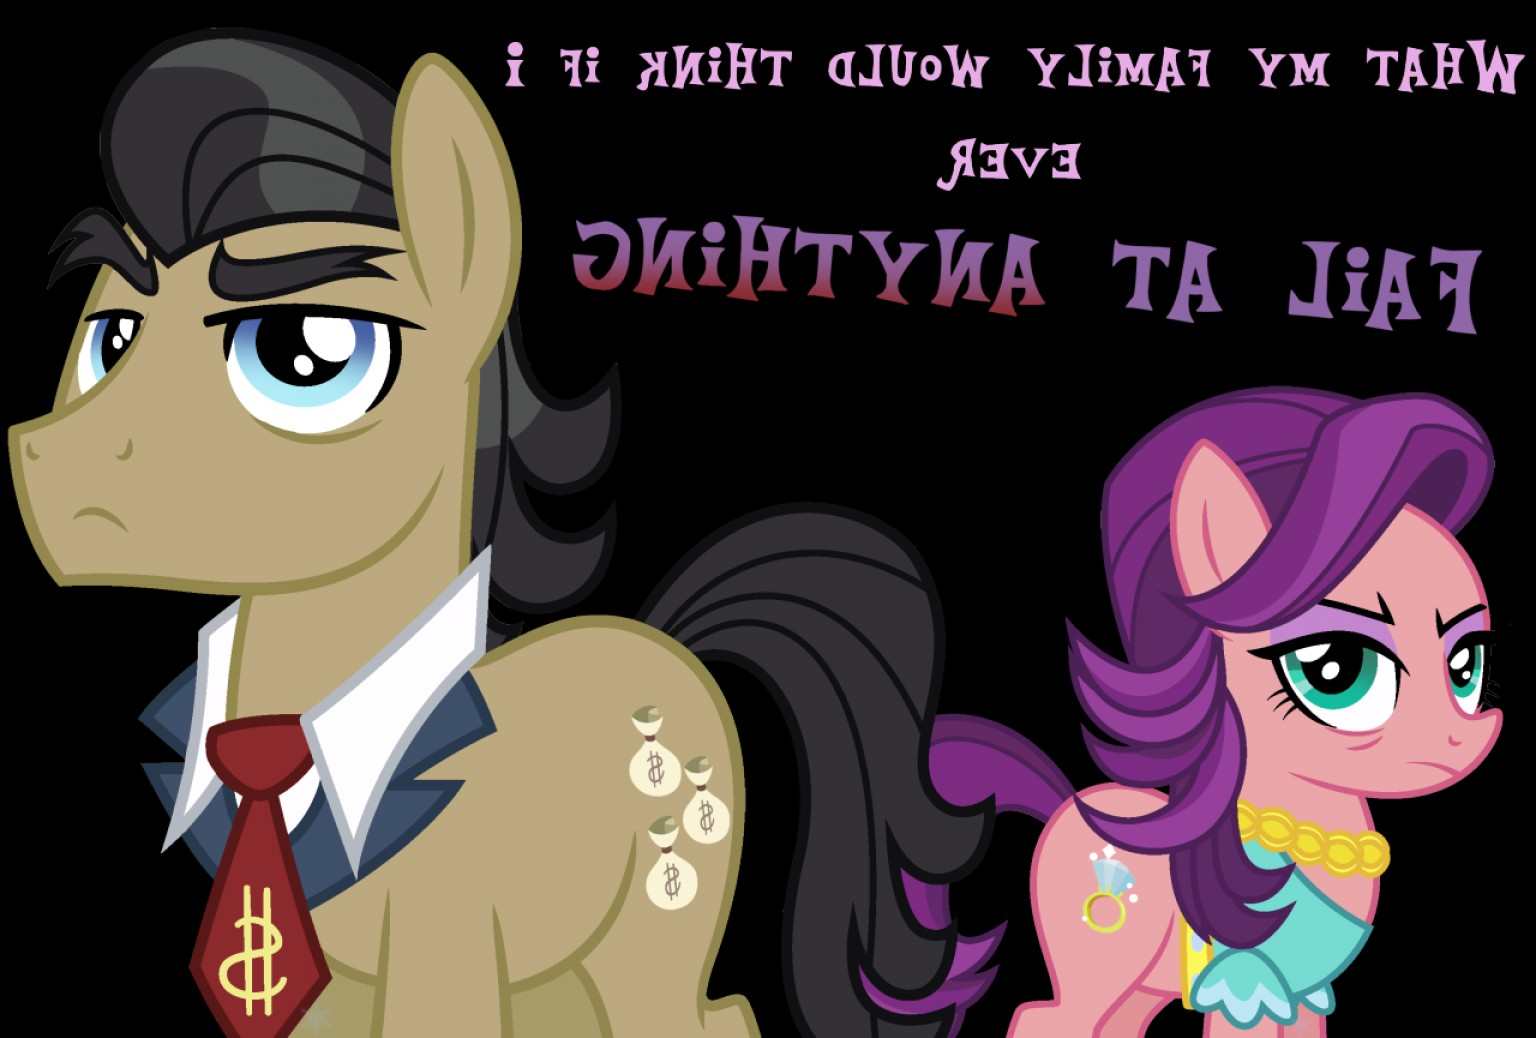 MLP OC Vector Family: Vector From A Recent Mlp Episode Filthy Rich And